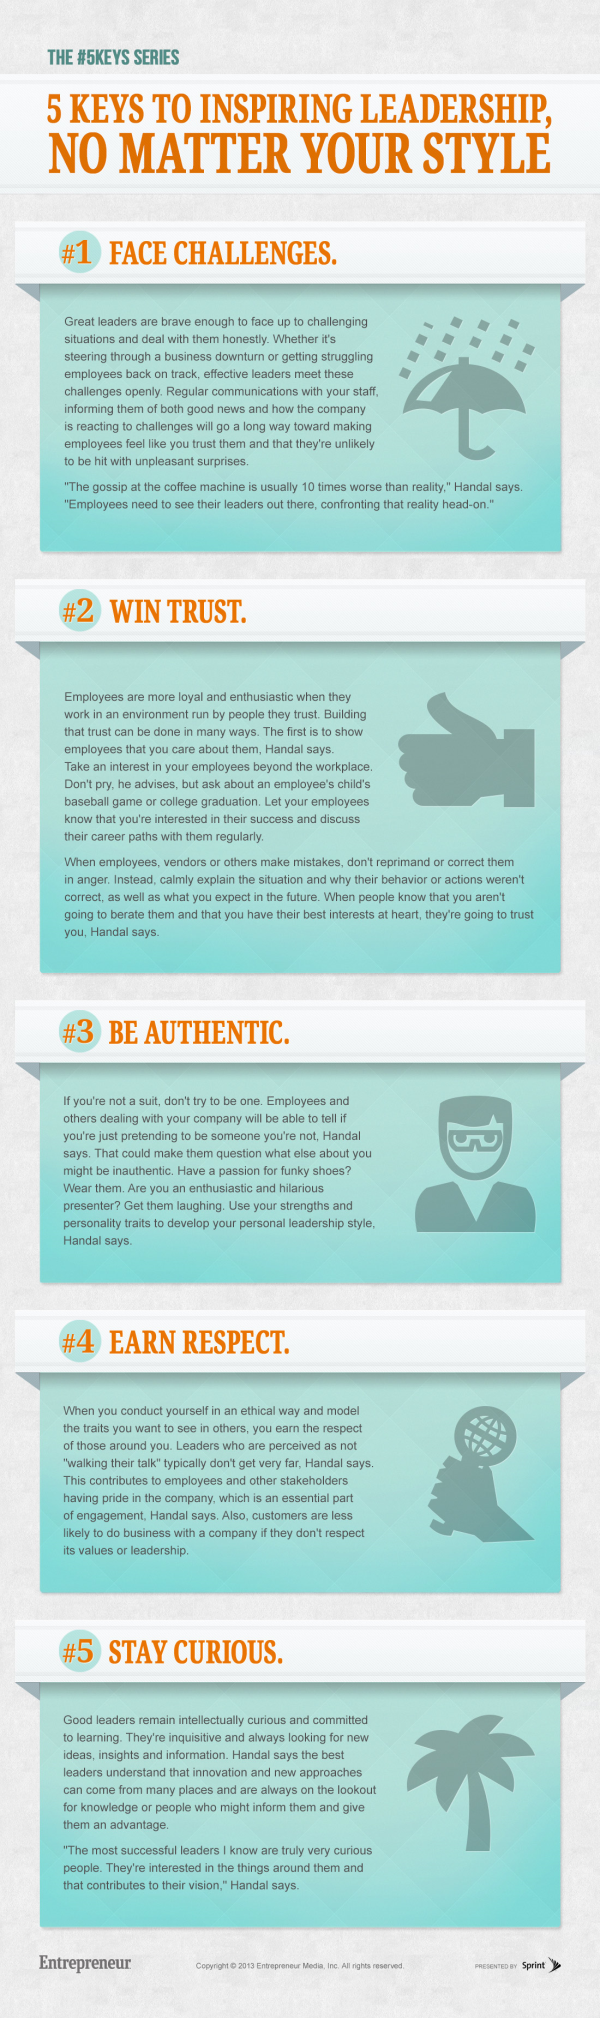 5 keys infographic inspiring leadership resized 600